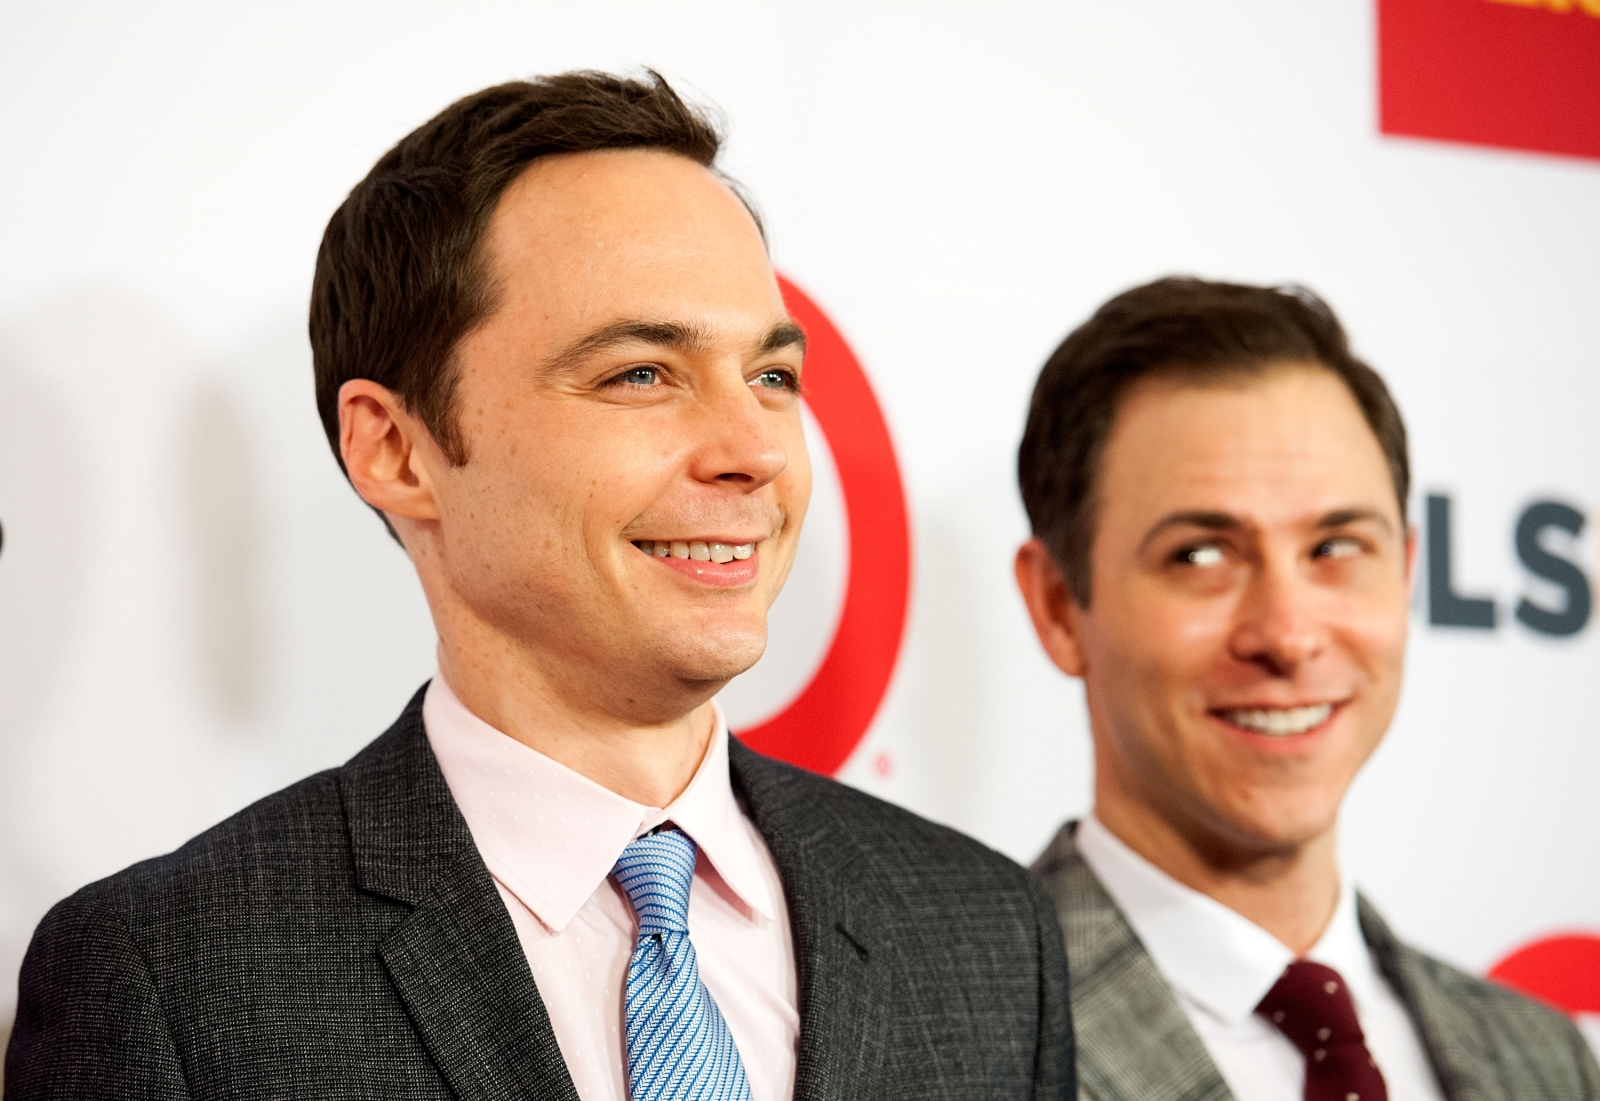 Big Bang Theory fans drooling over photos of newlyweds Jim ...